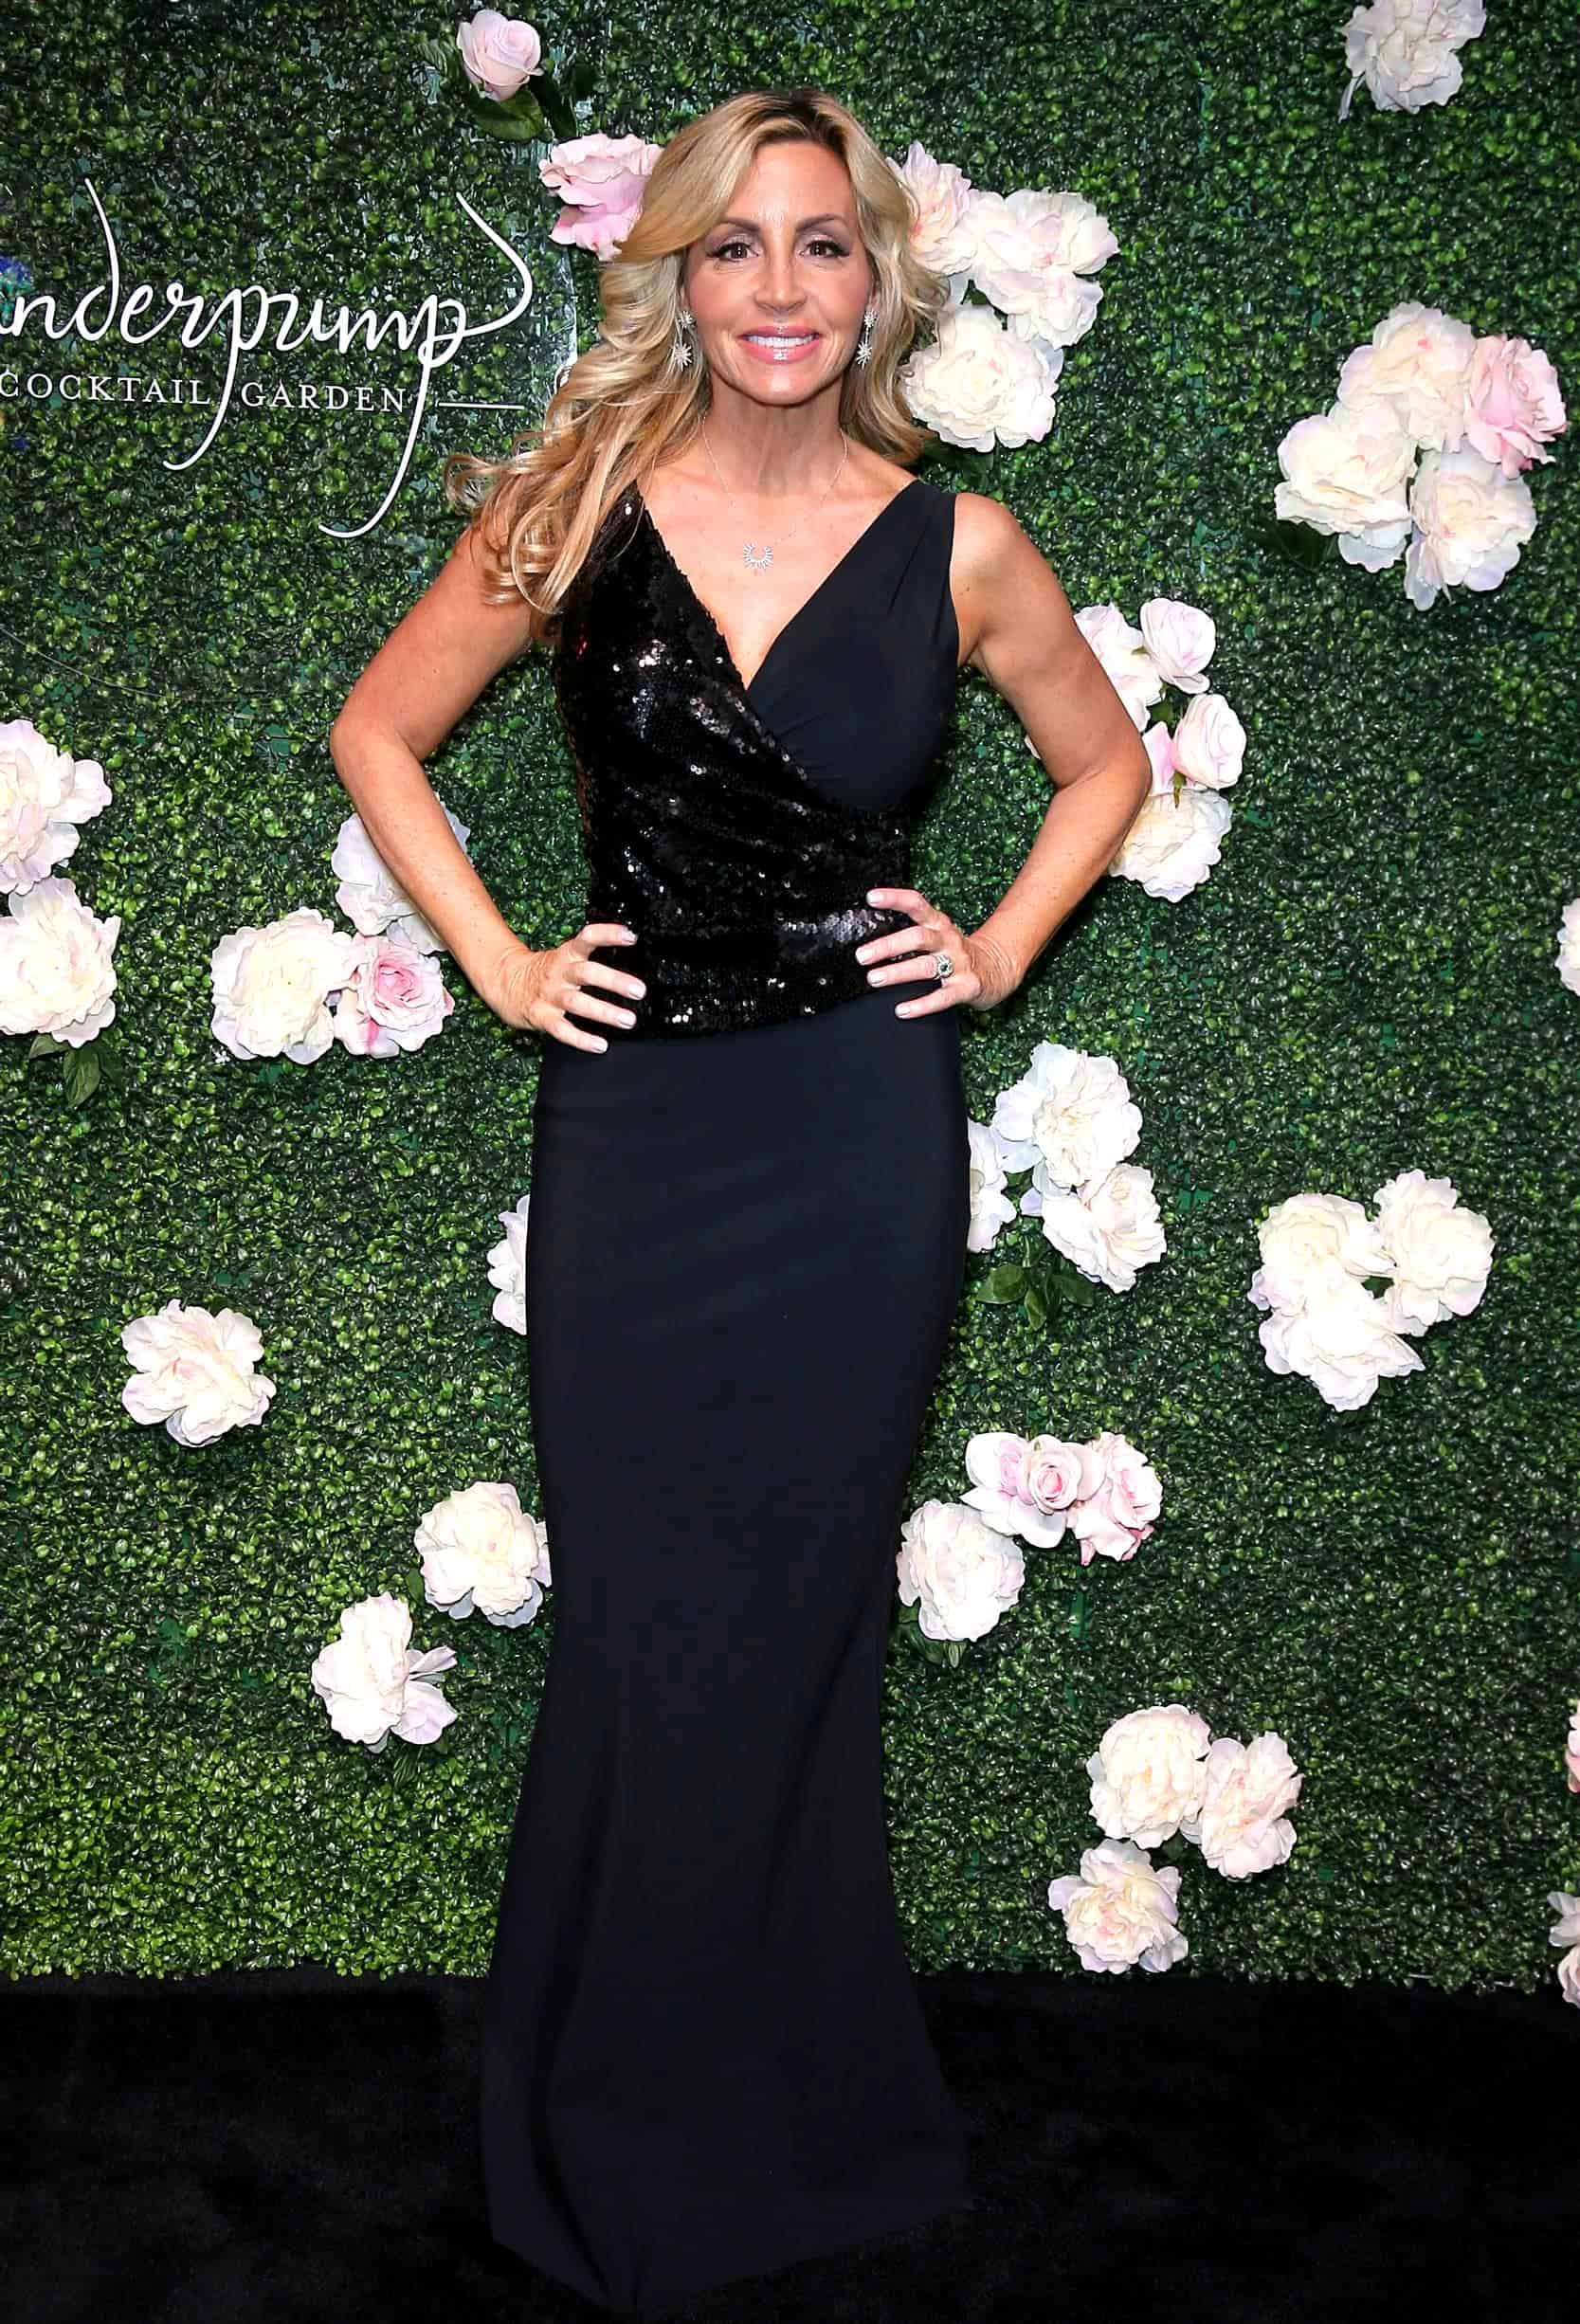 Camille-Grammer-at-Vanderpump-Cocktail-G